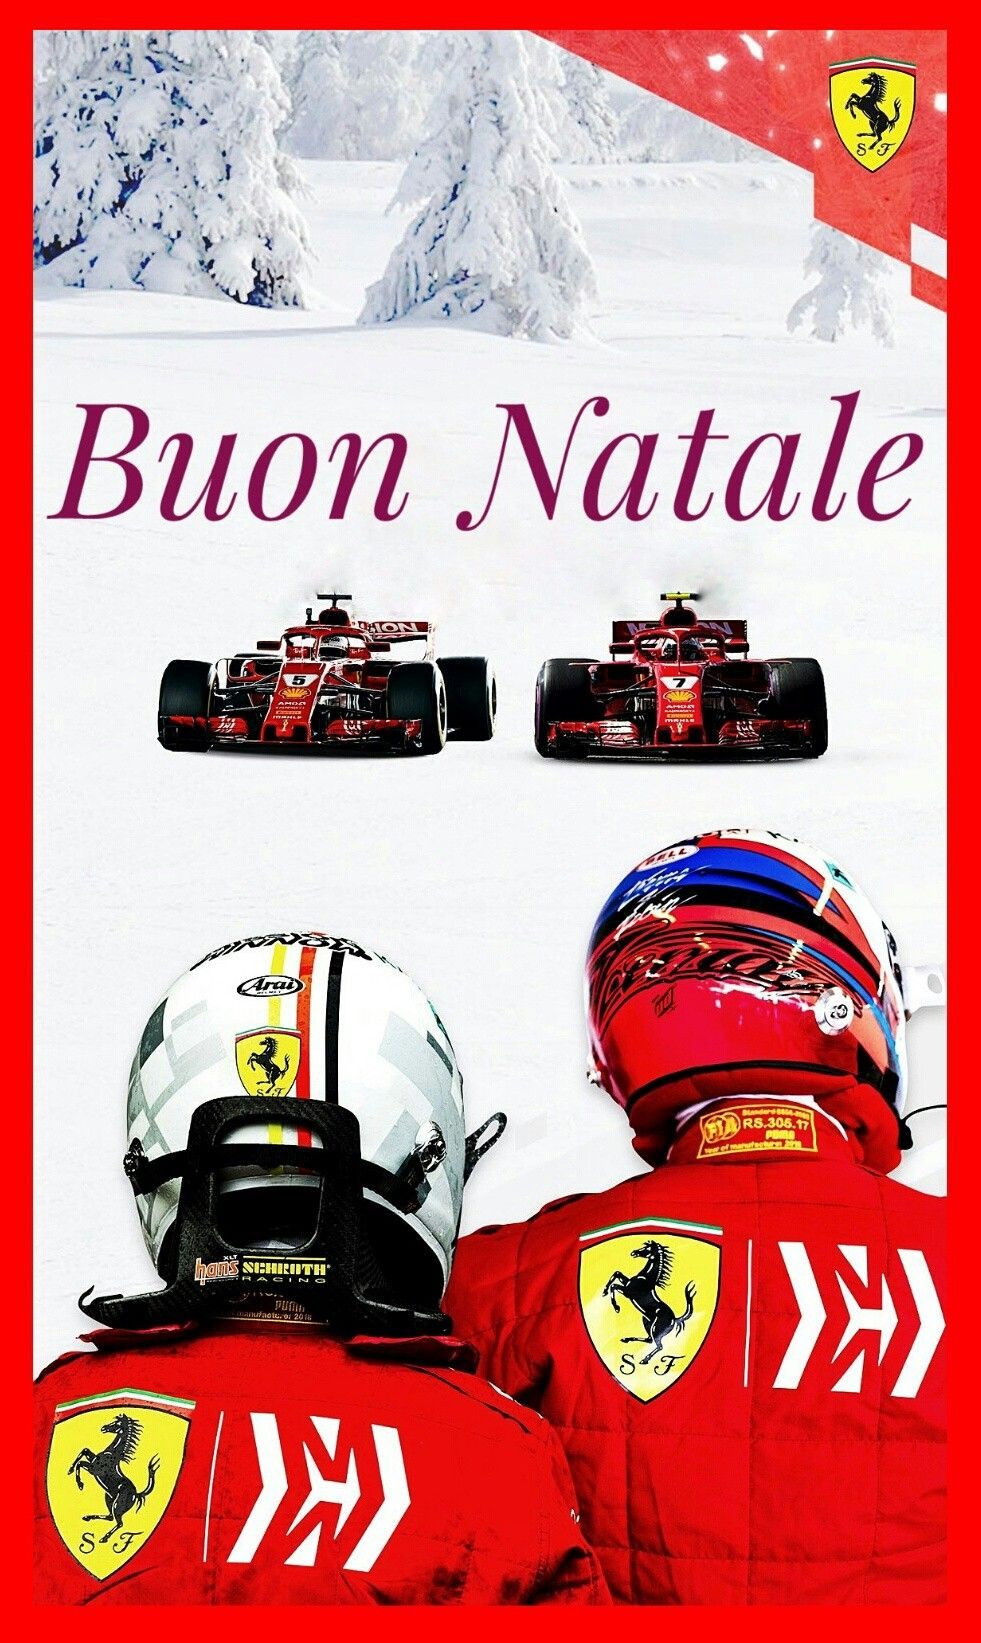 Buon Natale Ferrari.Buon Natale Season S Greetings From Everyone At Scuderia Ferrari As One Season Comes To An End It S T Red Season Motorsport Events Time To Celebrate